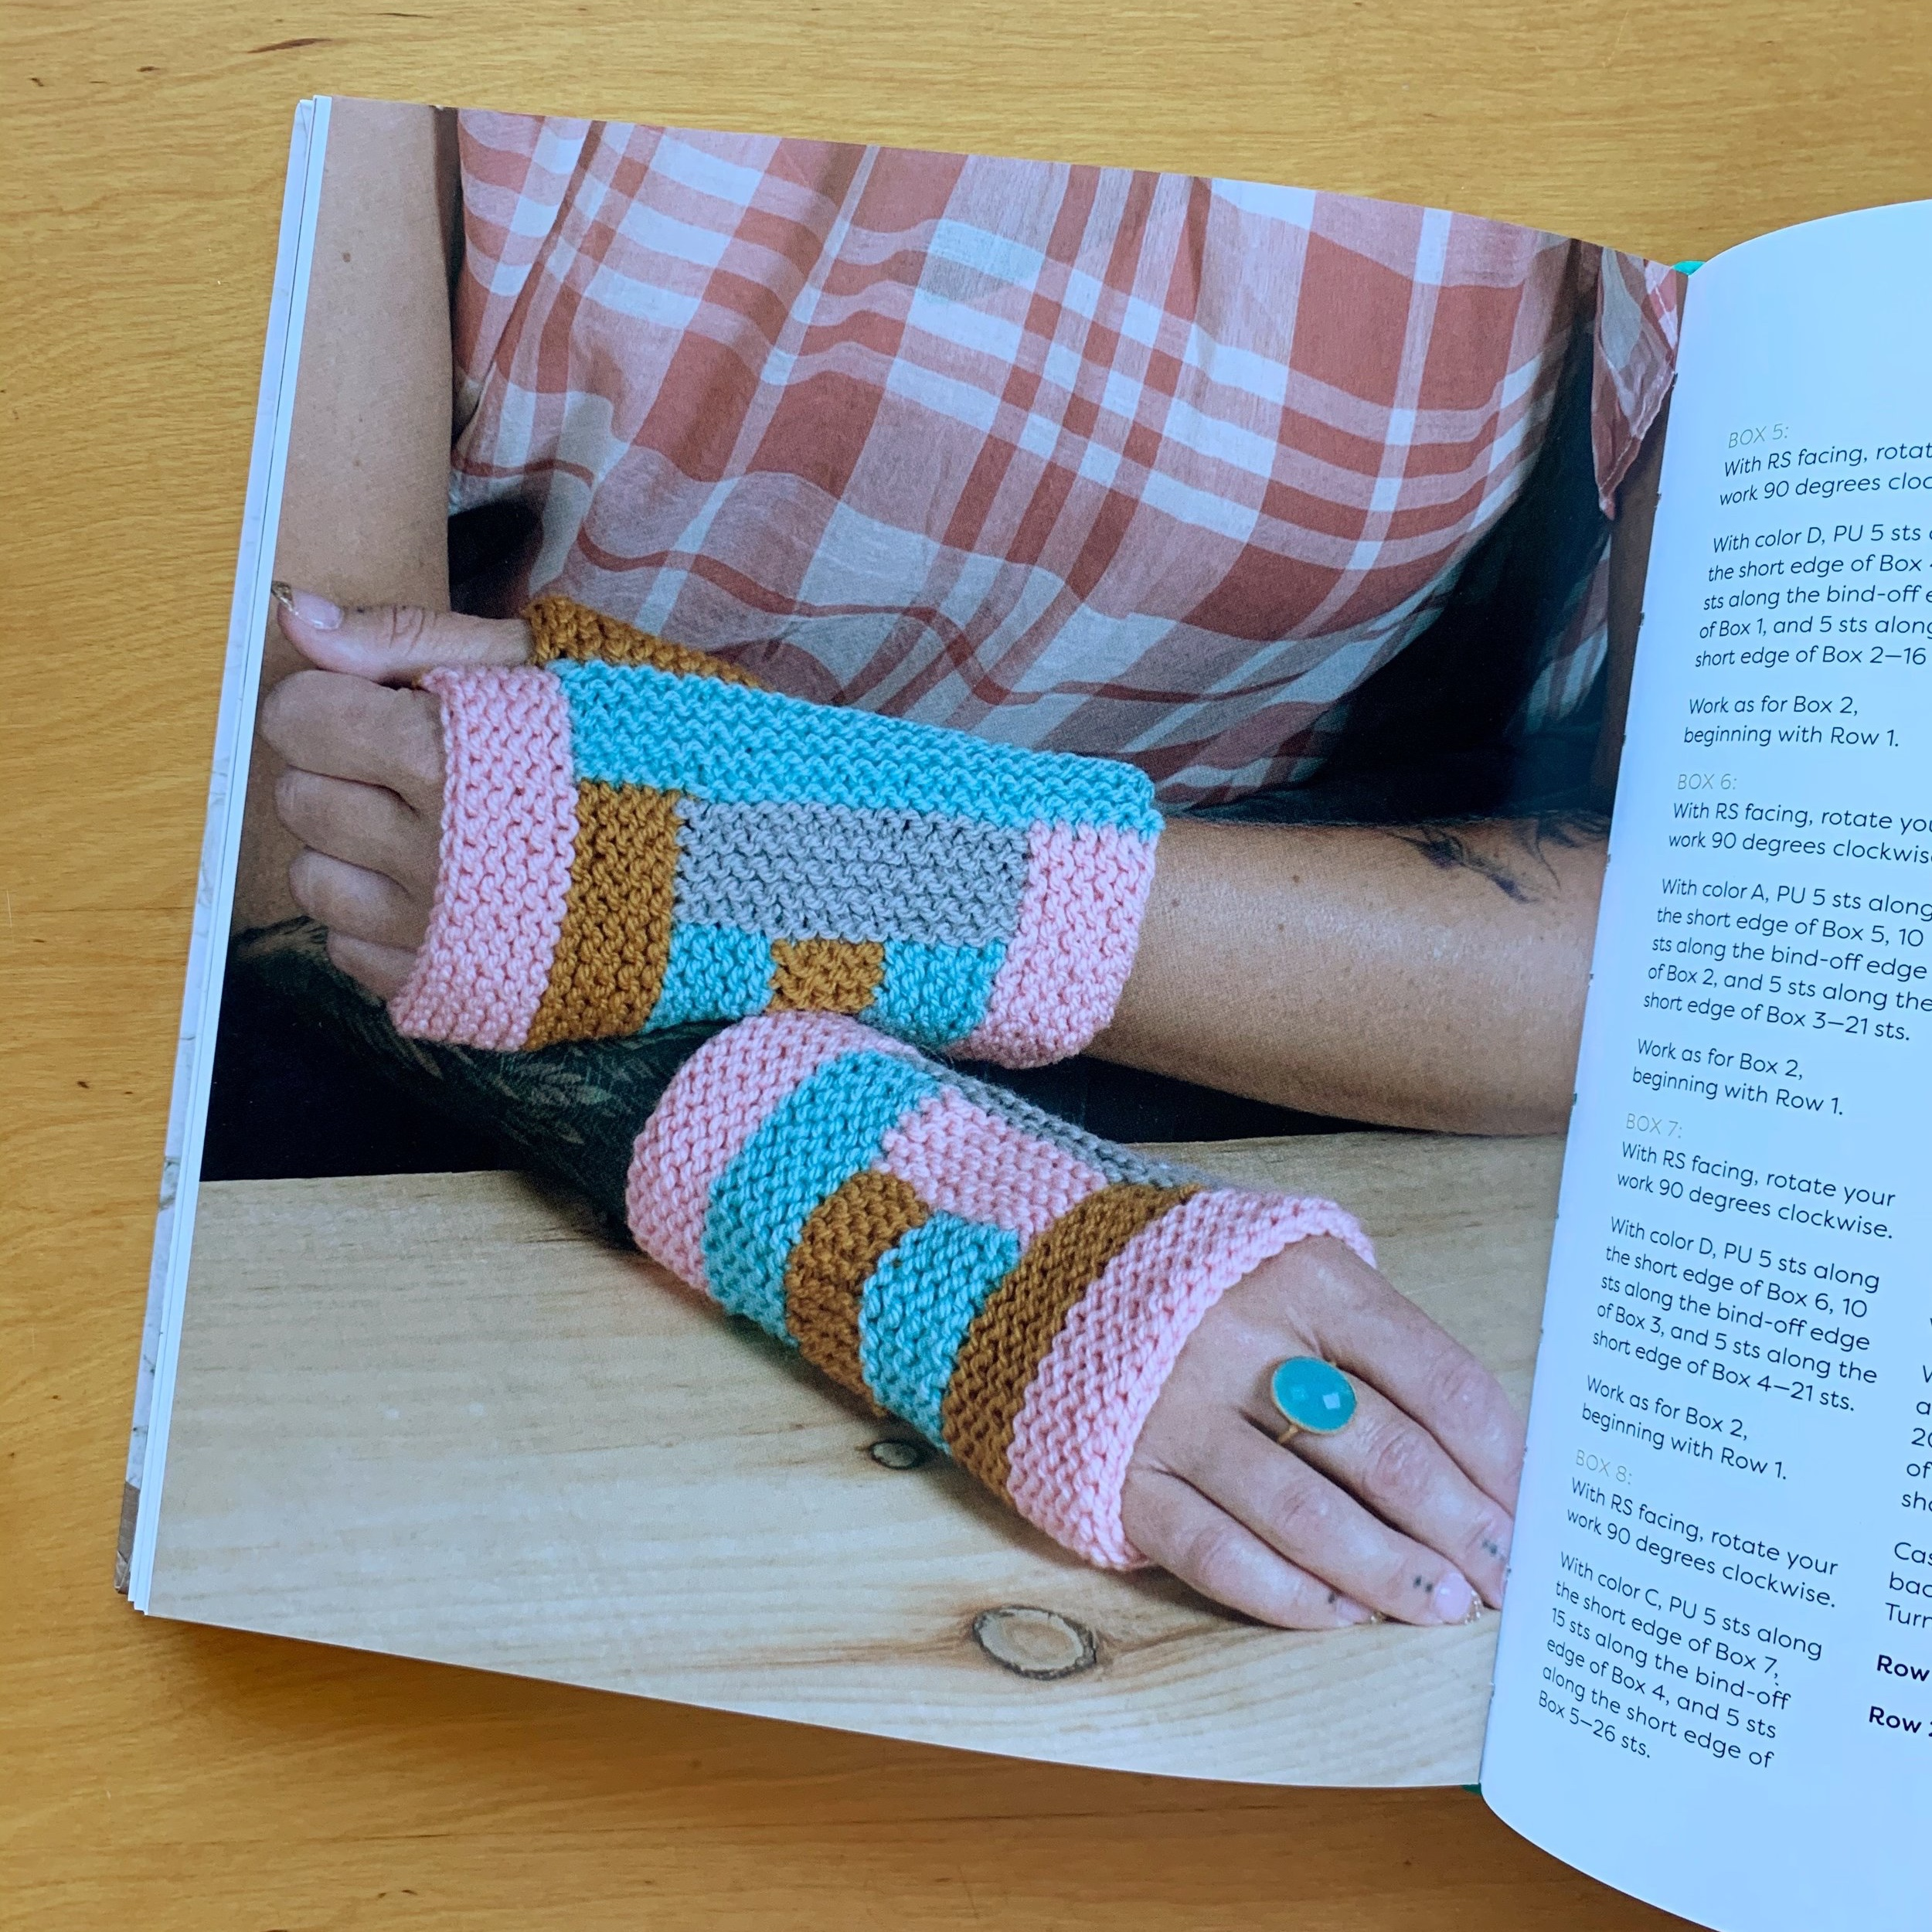 Wärme Mitts designed by Heather Walpole for  The Knit Vibe by Vickie Howell